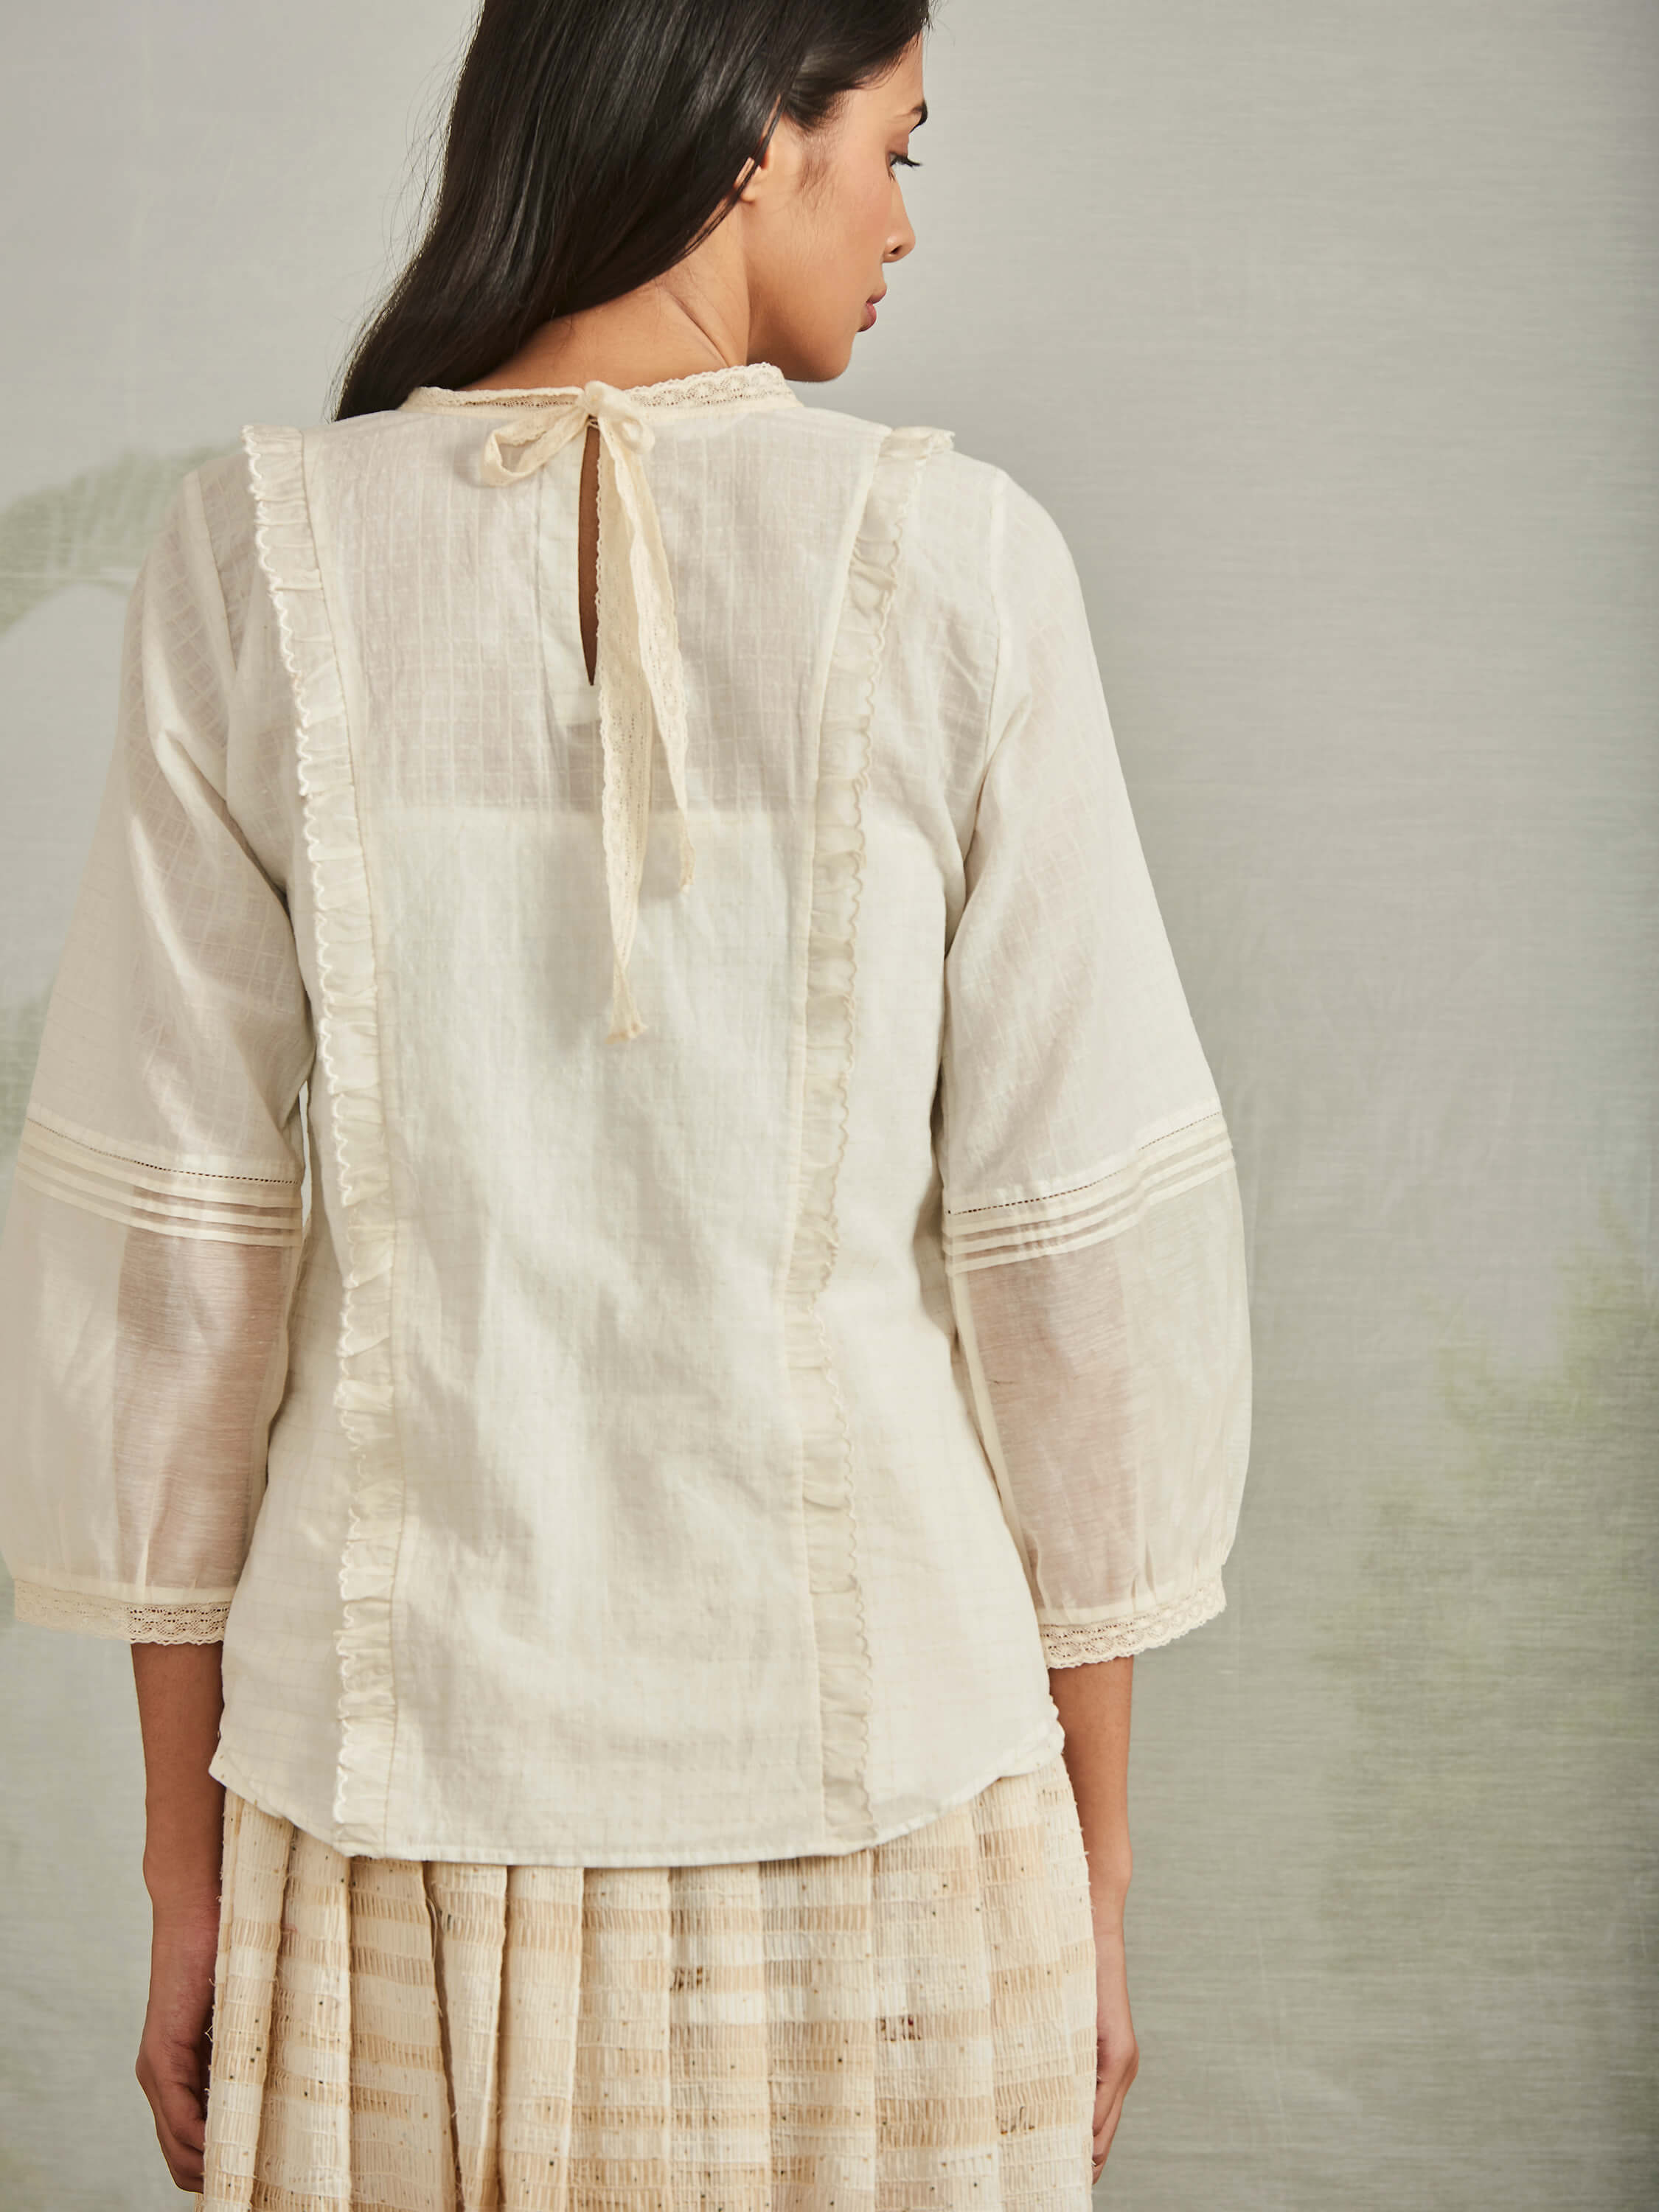 Cloud Atlas Blouse - BunaStudio